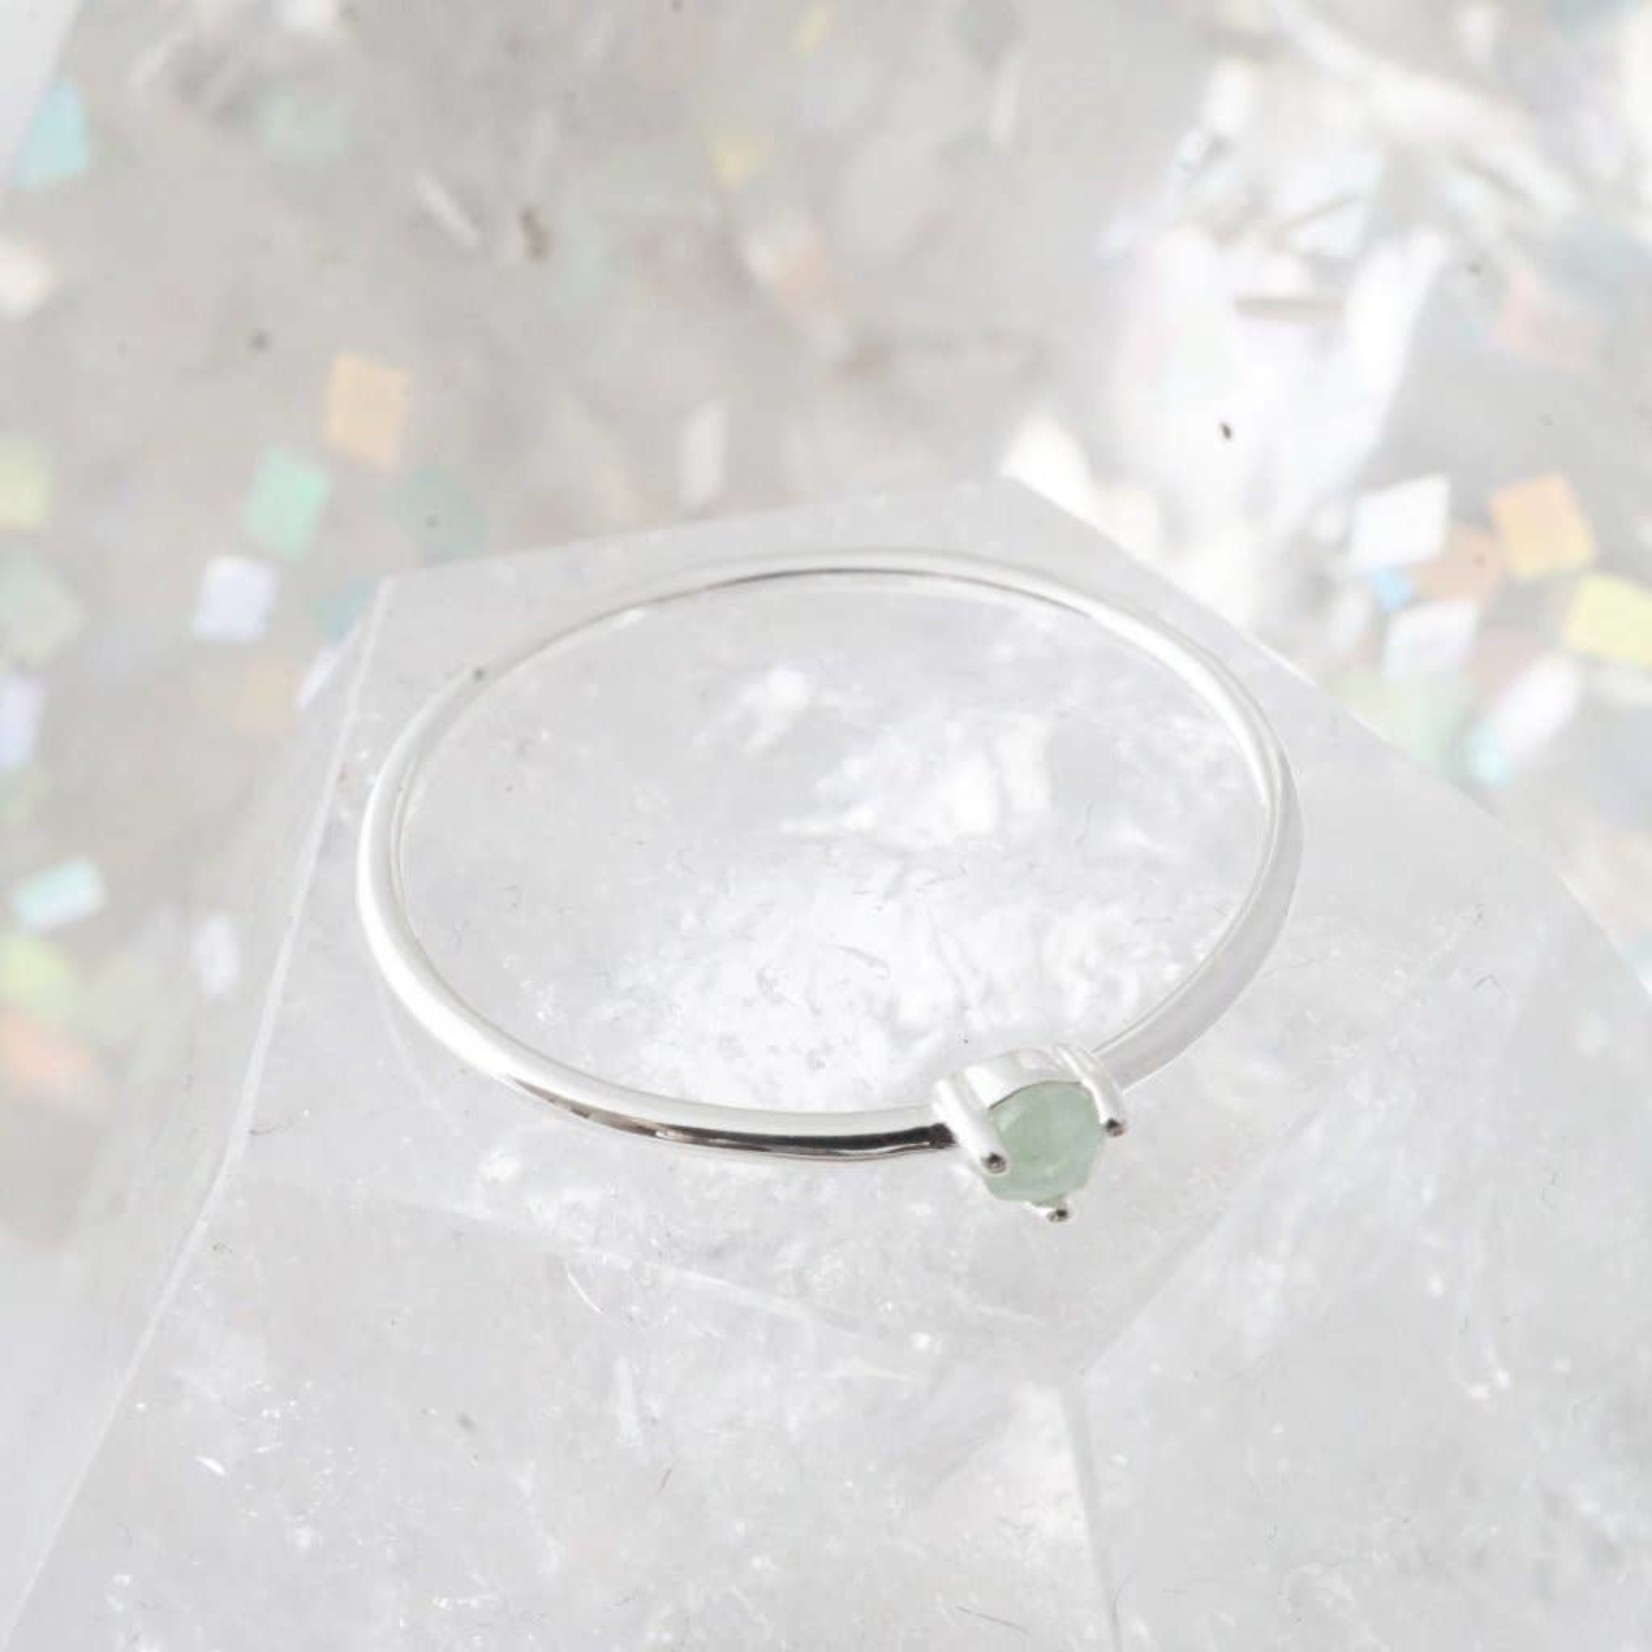 Honeycat Jewelry Honeycat Point Solitaire Ring JADE Silver